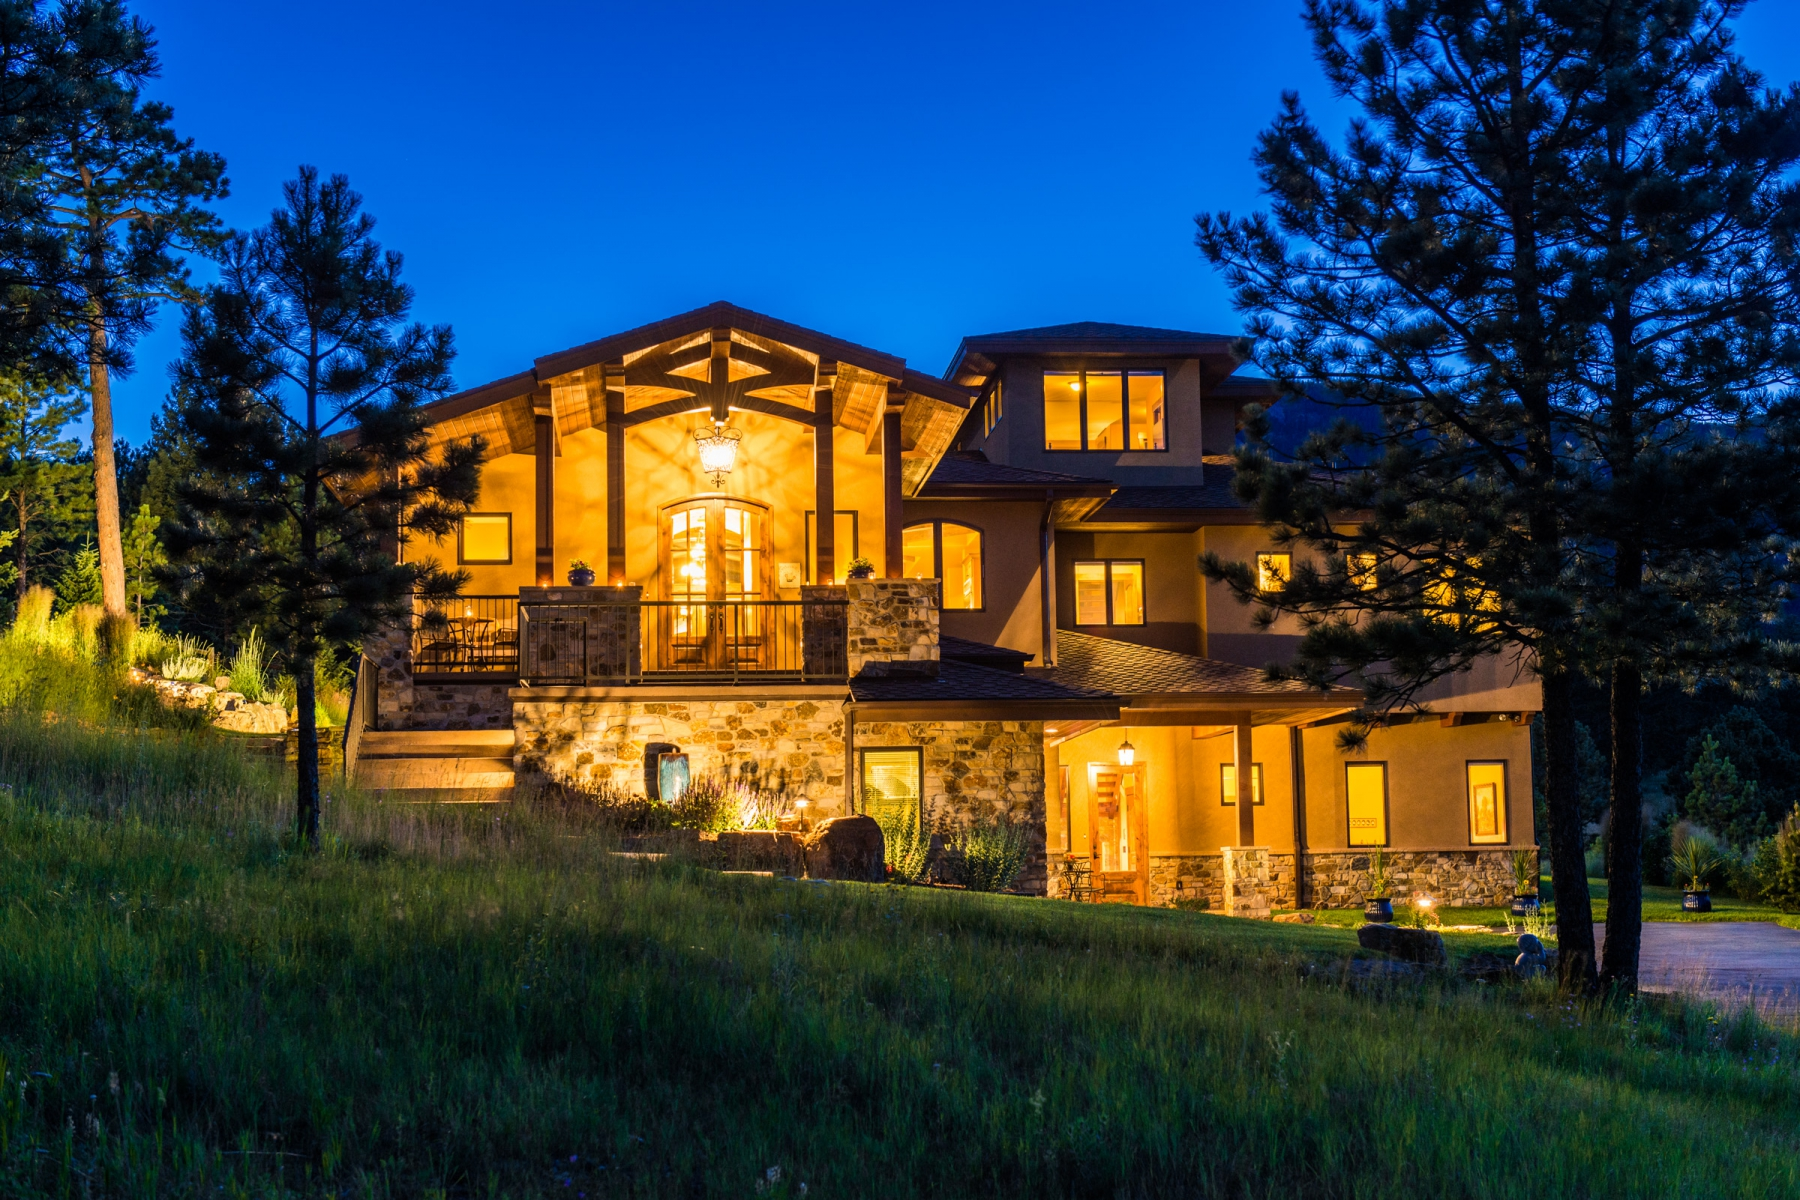 Single Family Home for Sale at Grand Tuscan Style Villa 3079 Royale Elk Way Evergreen, Colorado 80439 United States